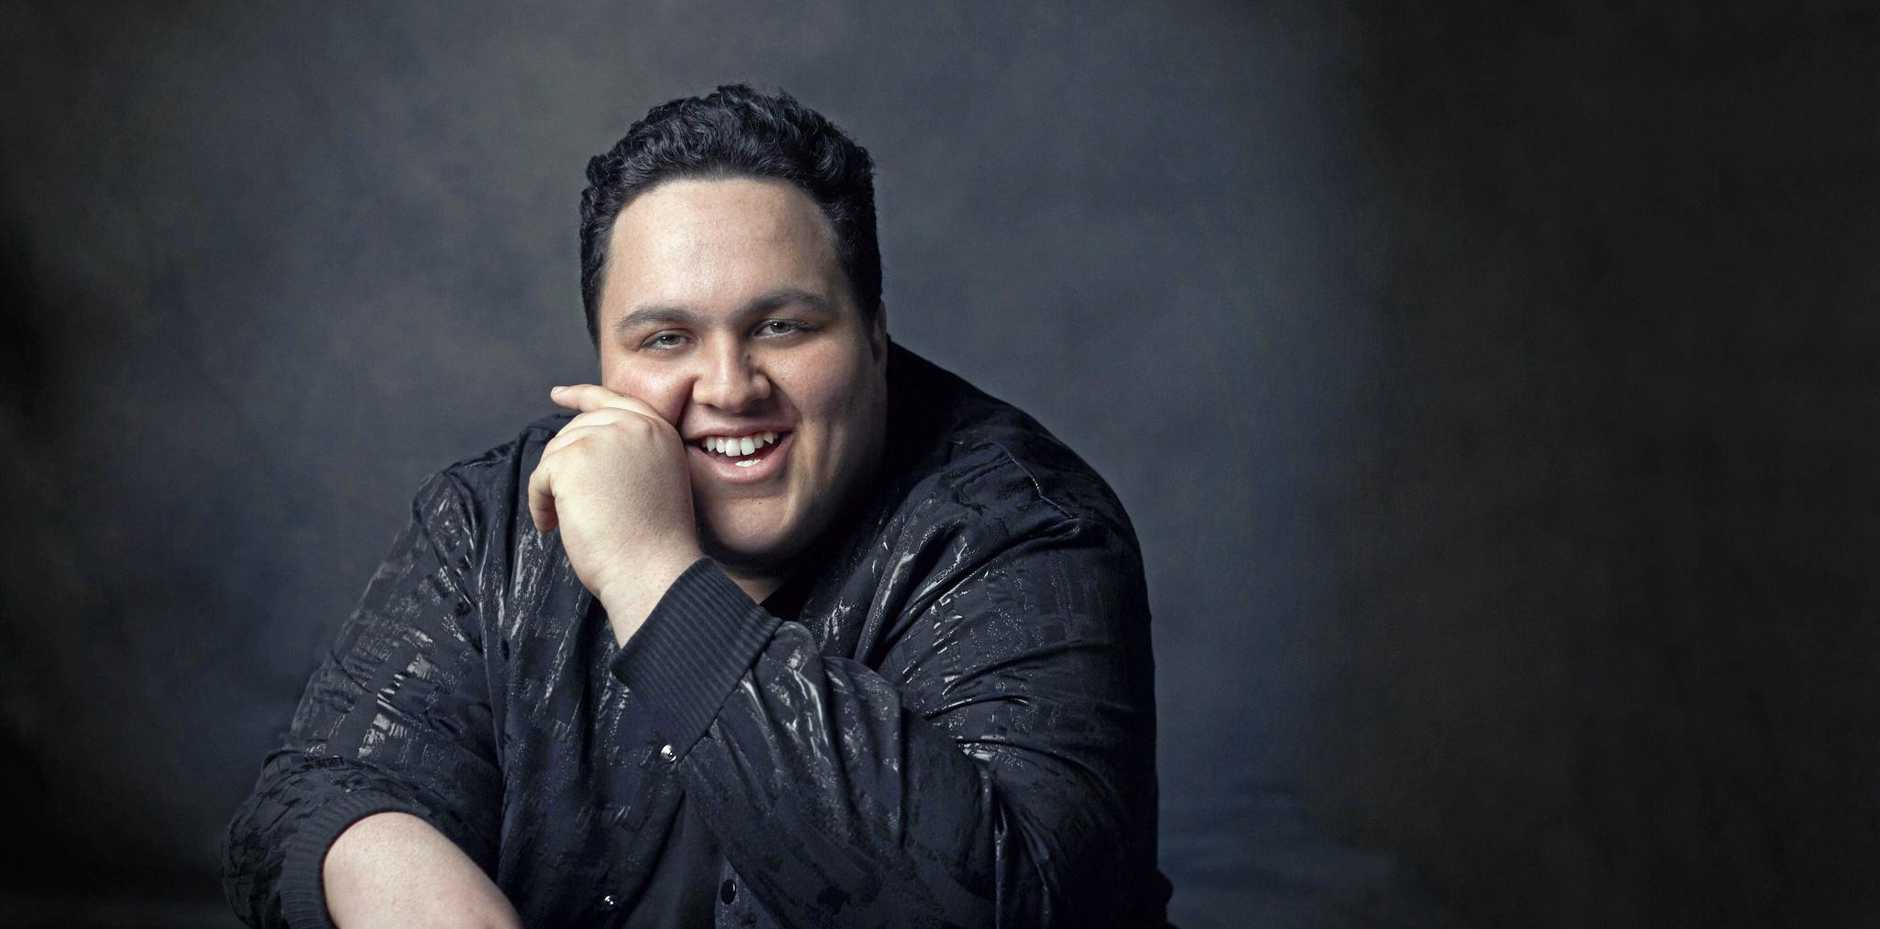 SUCCESS: The Voice winner Judah Kelly will release his debut album later this month.